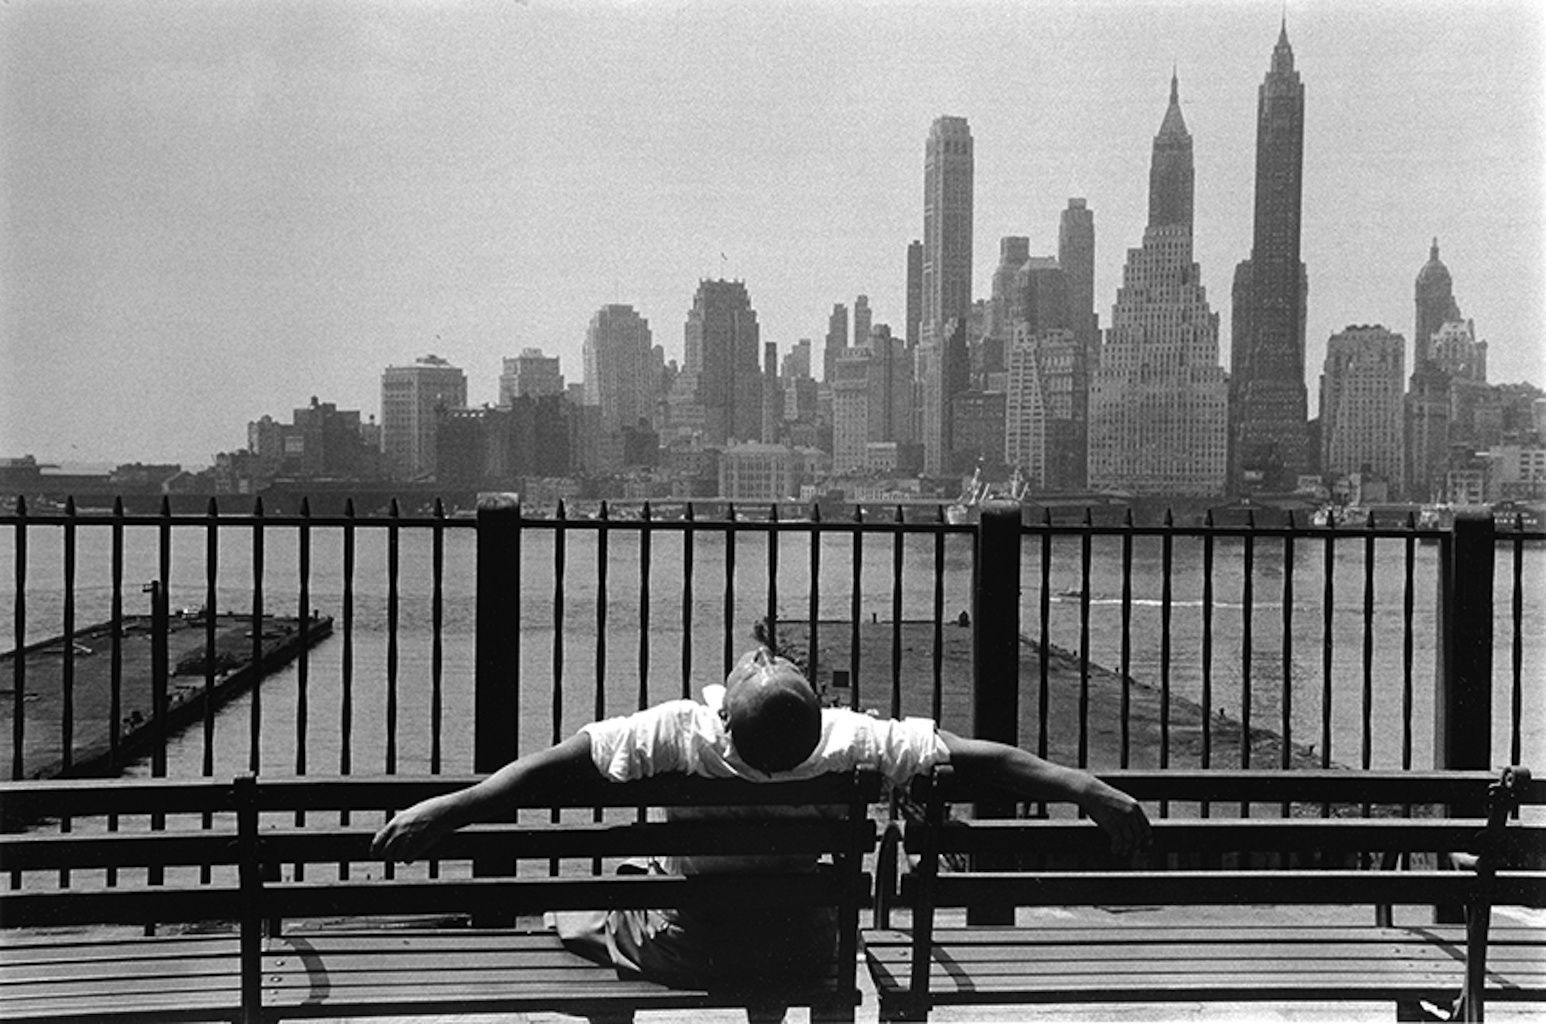 Brooklyn promenade, New York, Louis STETTNER, 1954